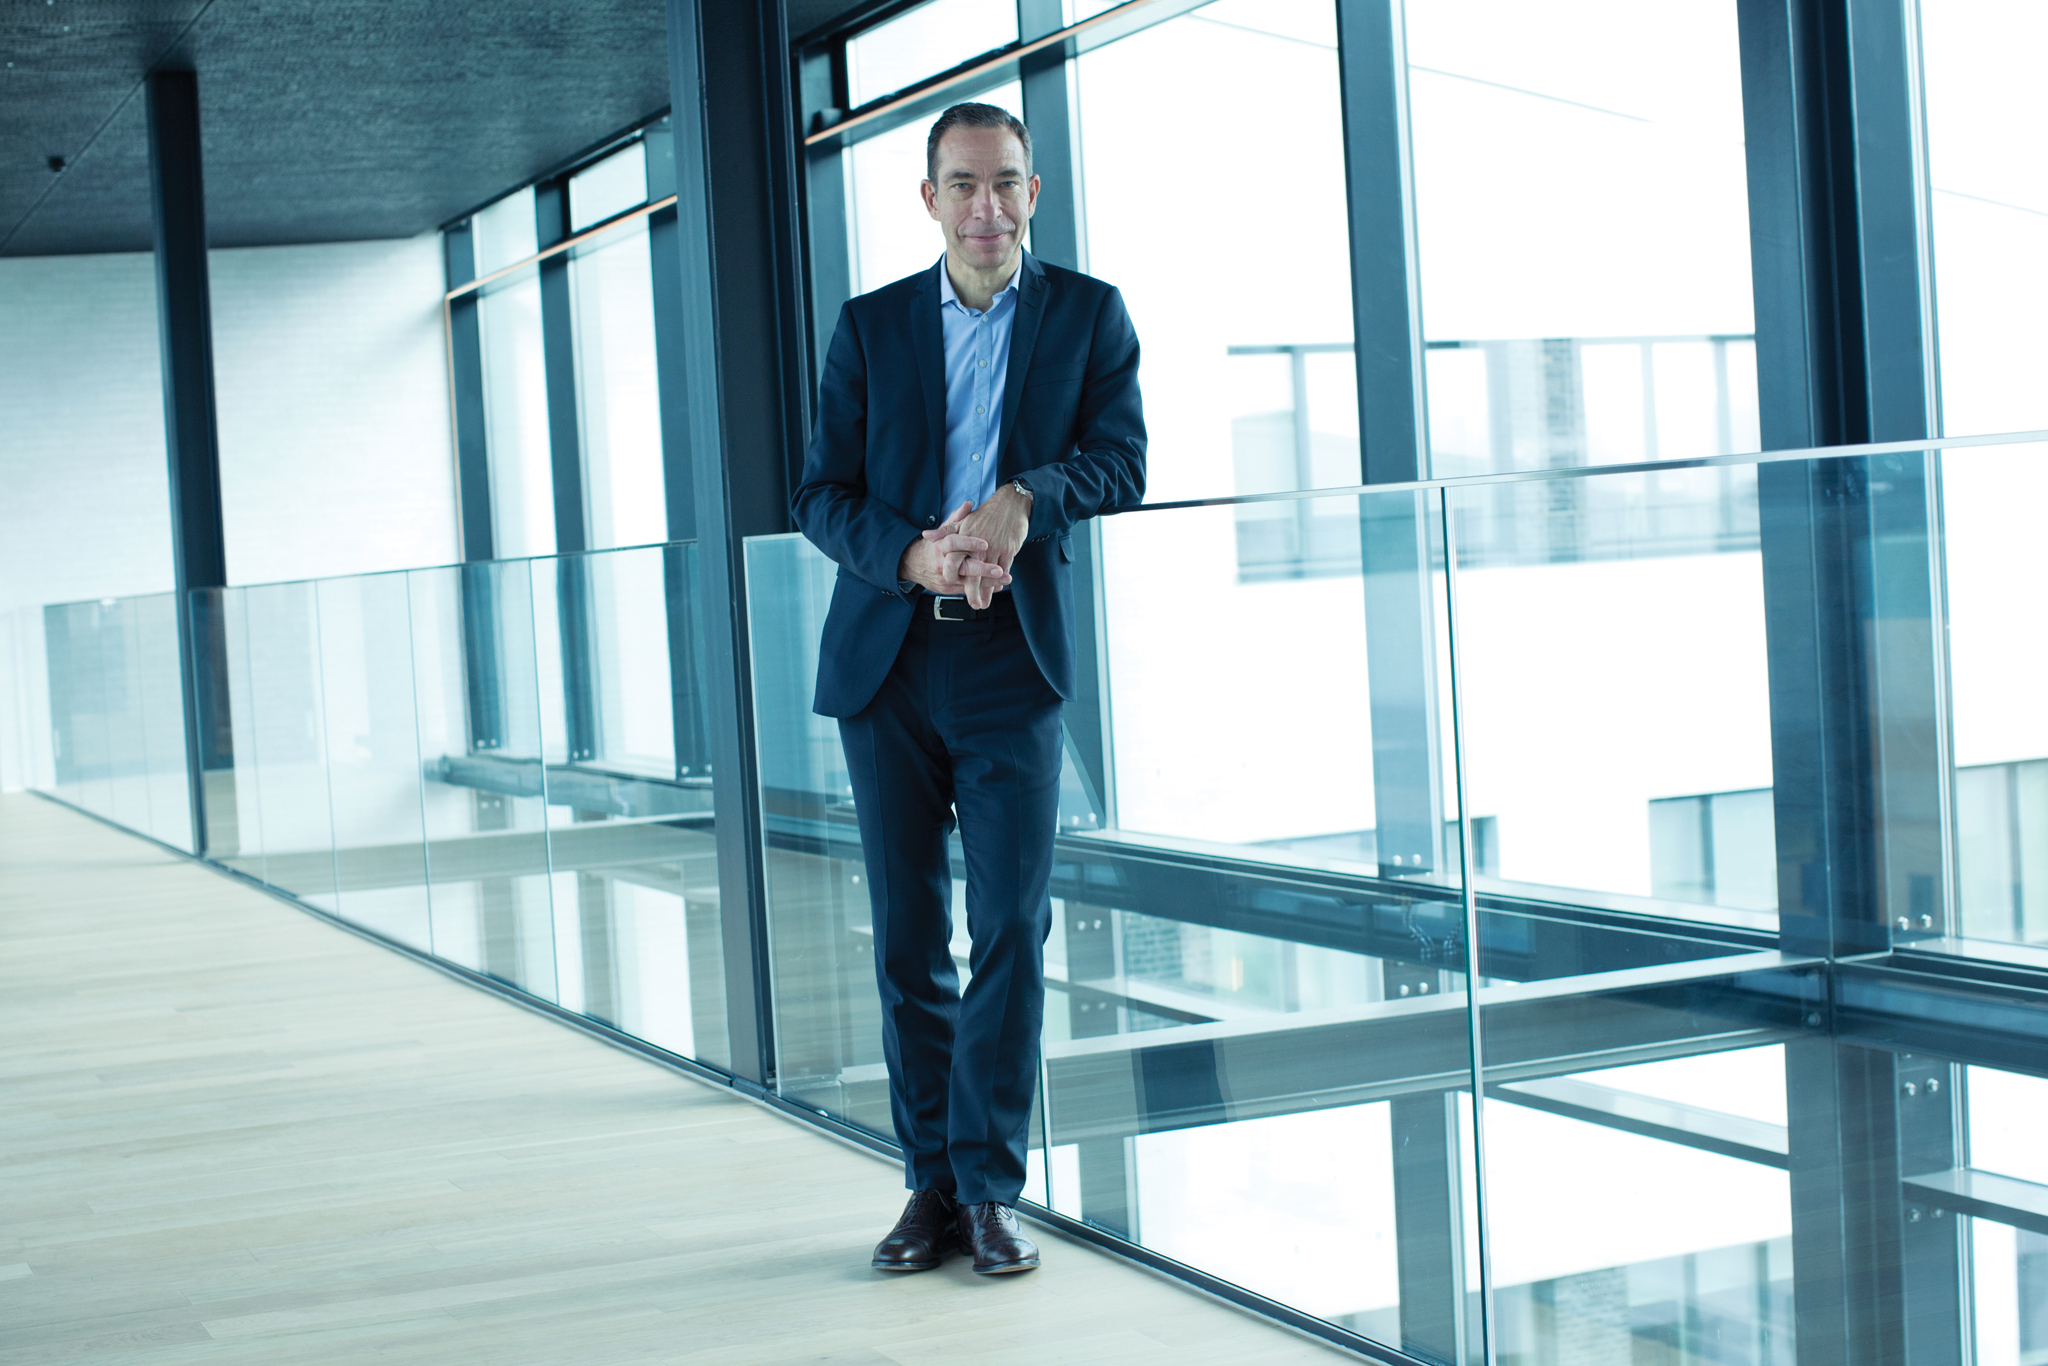 Anders Colding Friis, chief executive officer of Pandora.